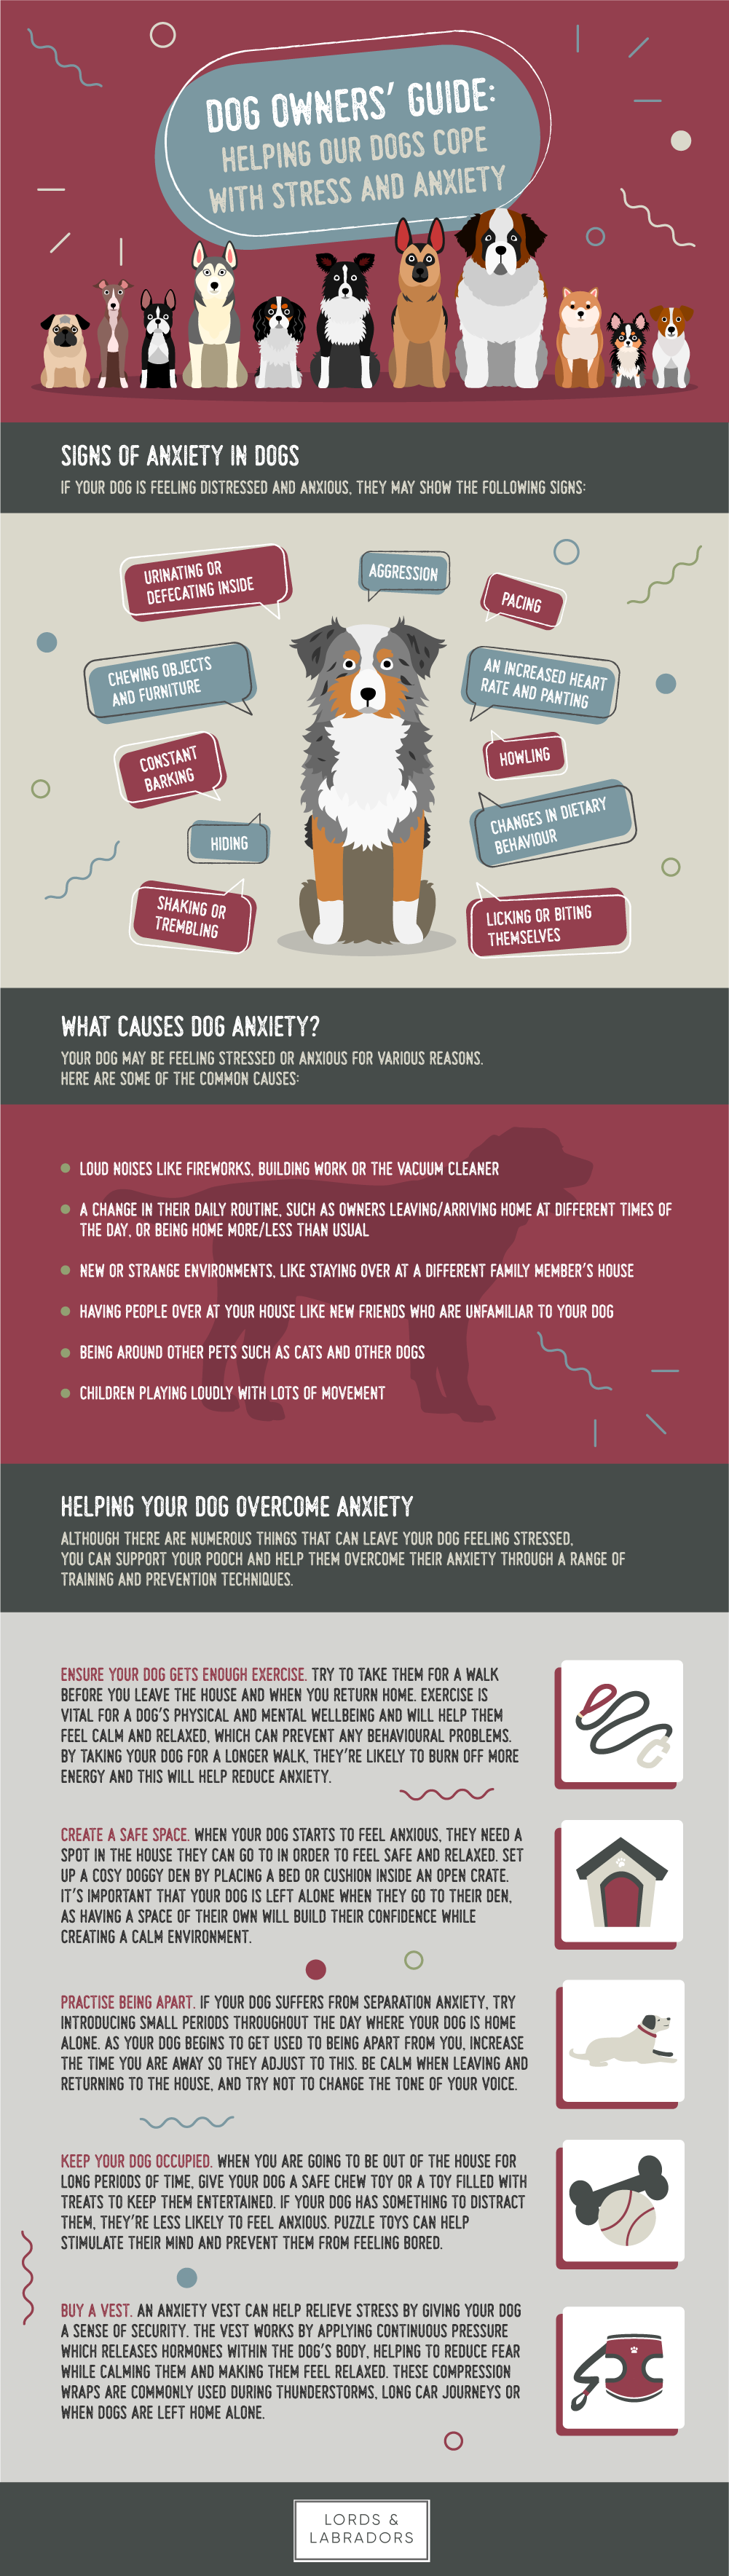 Dog Owners Guide to Helping Dogs with stress and anxiety